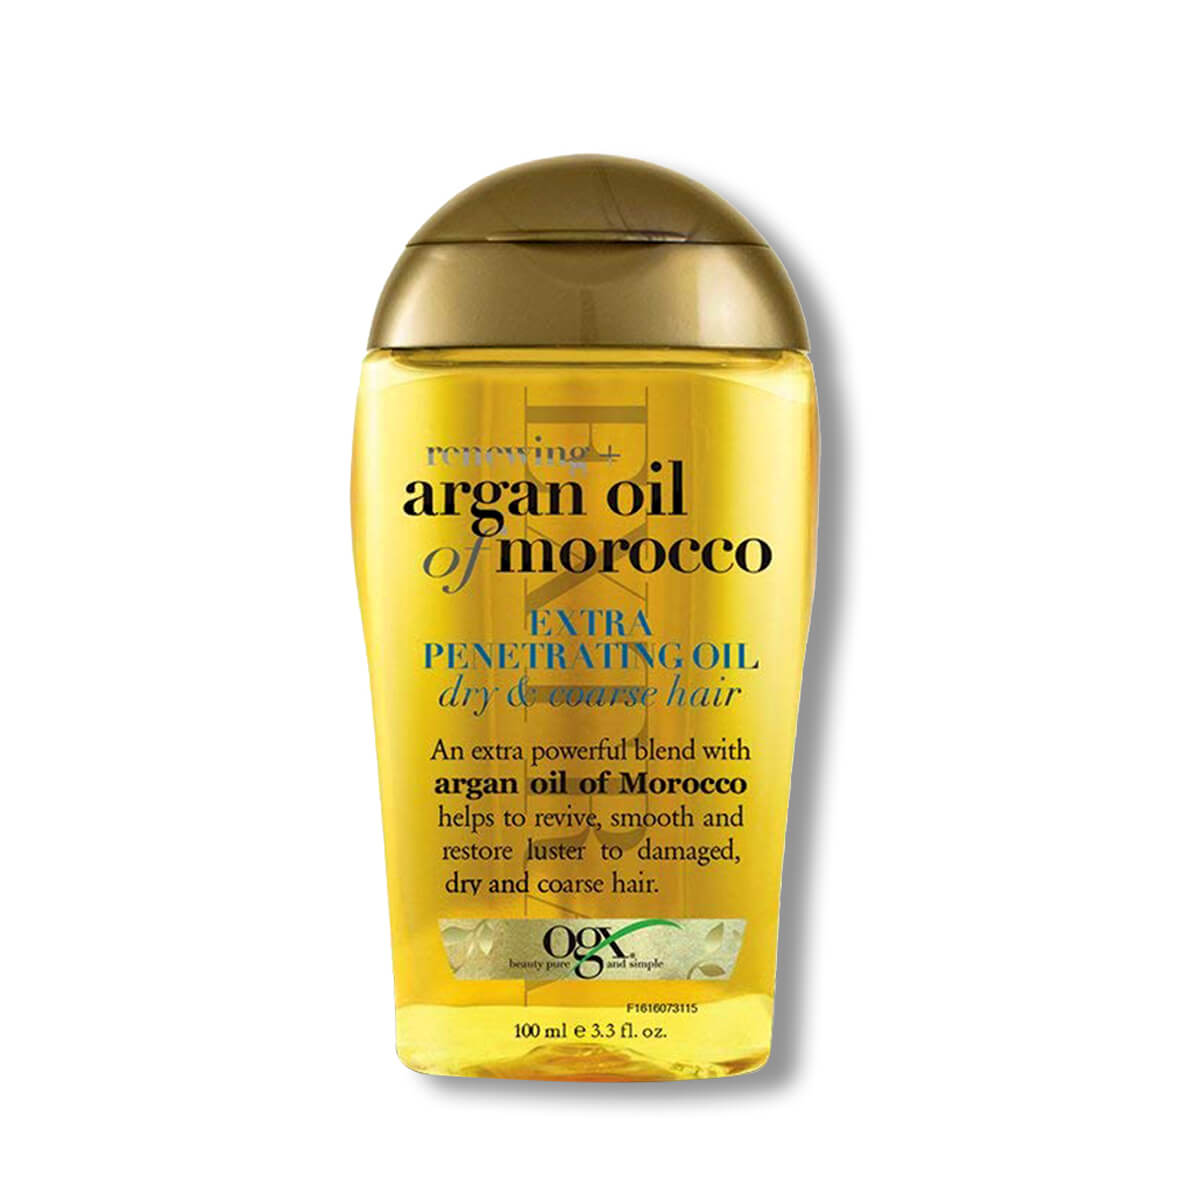 ARGAN OIL OF MOROCCO EXTRA PENETRATING OIL dry & coarse hair